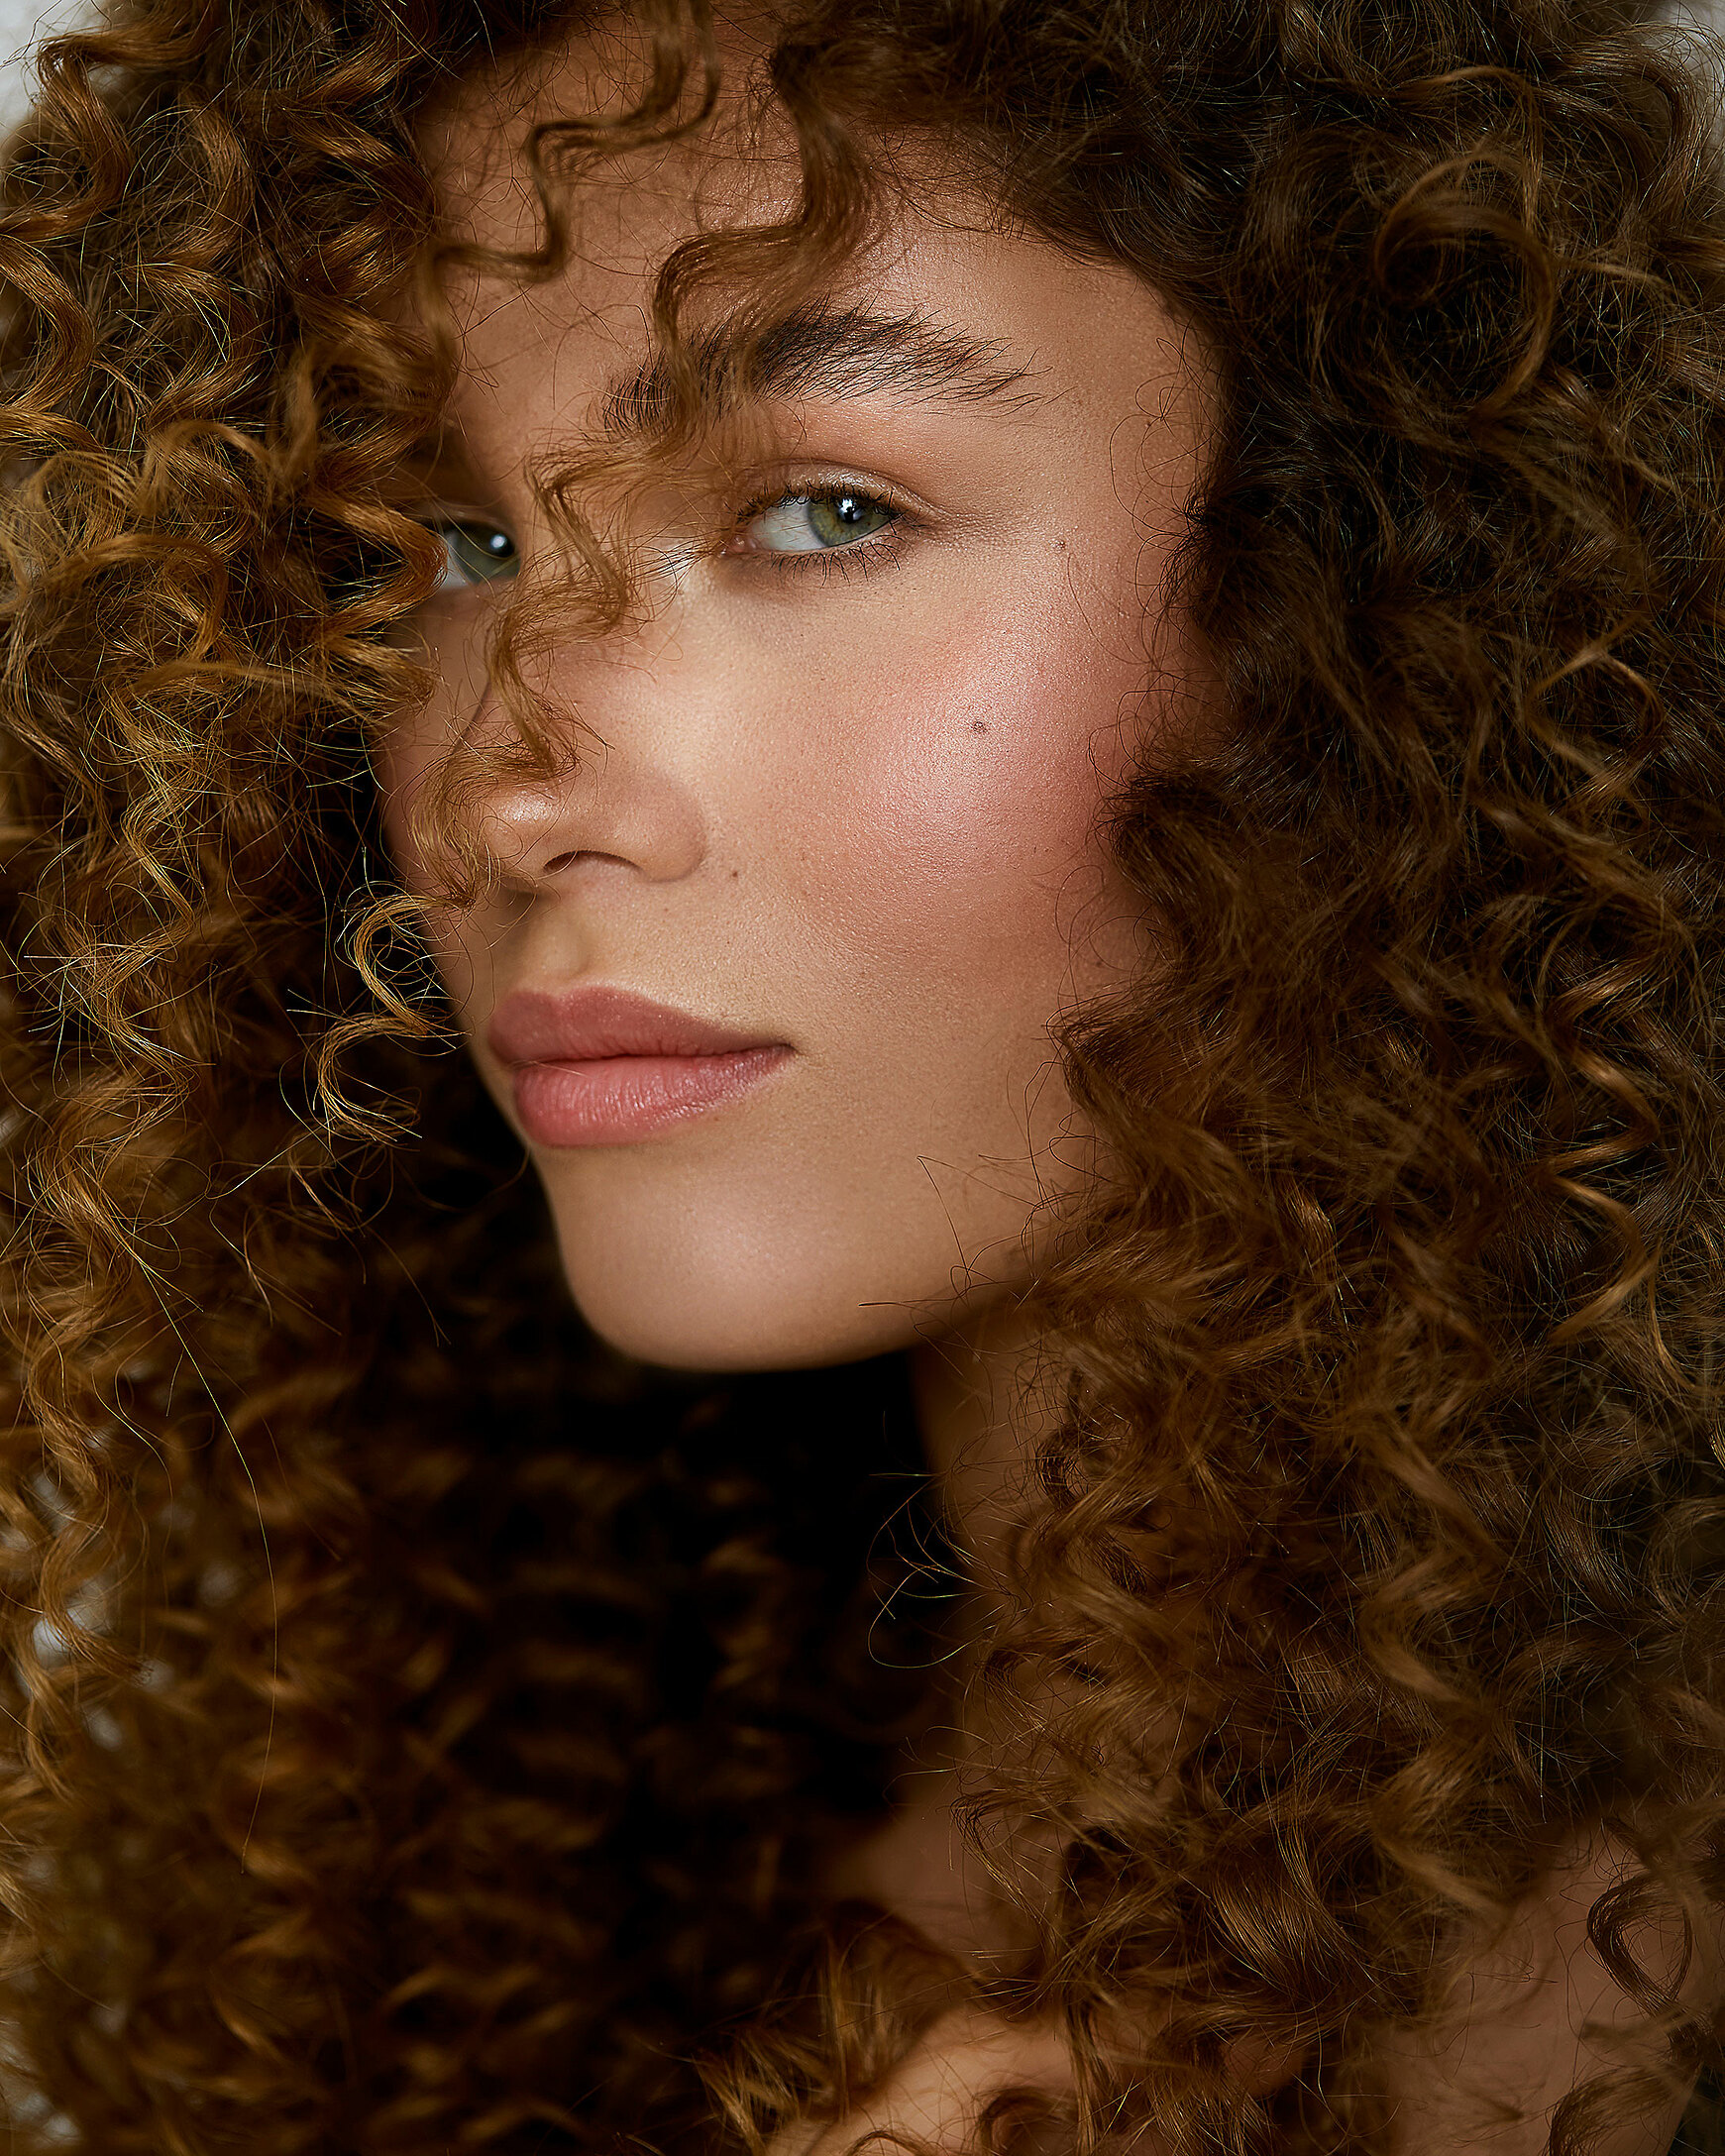 A close-up of a female model with big curly hair and a natural makeup.